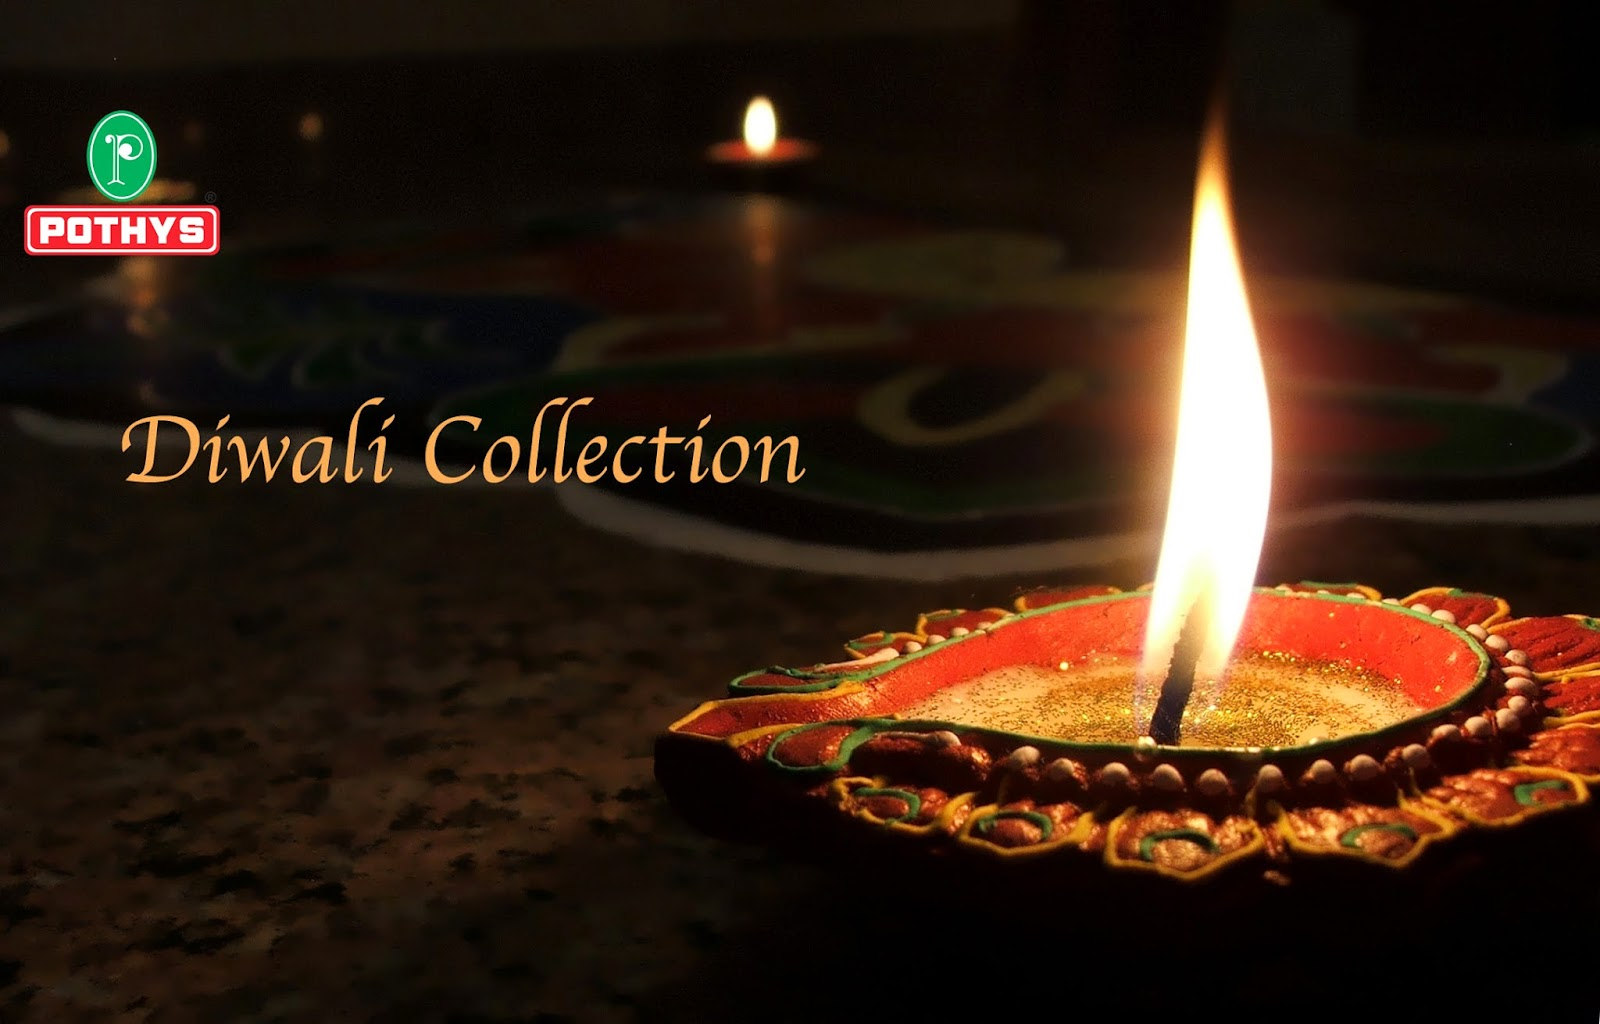 Diwali collections